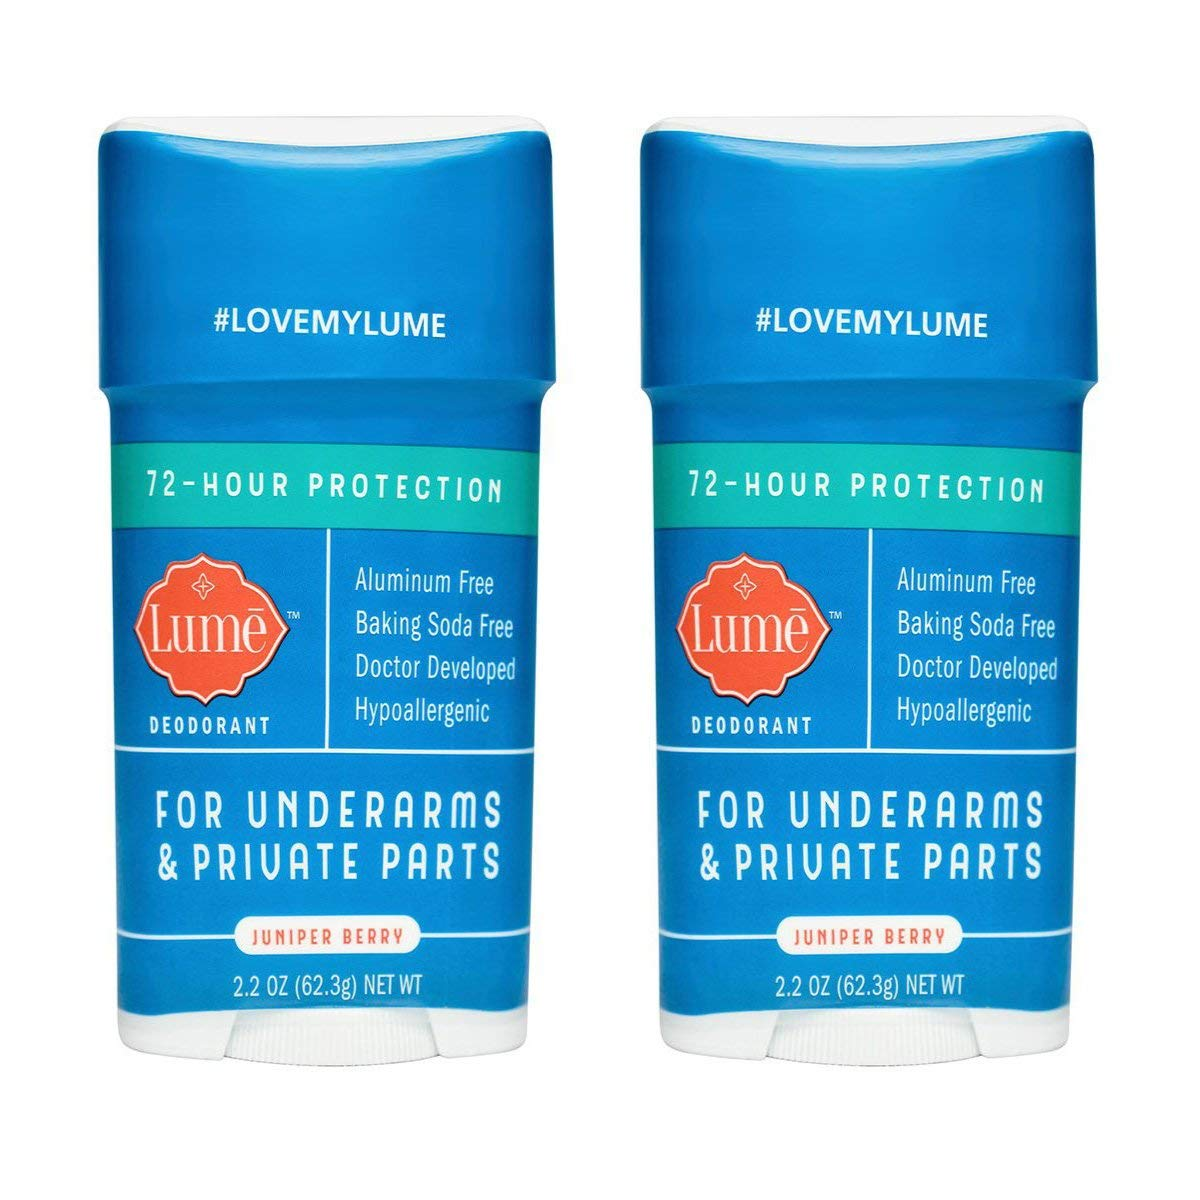 Lume Natural Deodorant - Underarms and Private Parts - Aluminum Free, Baking Soda Free, Hypoallergenic, and Safe For Sensitive Skin - 2.2 Ounce Stick Two-Pack (Juniper Berry)